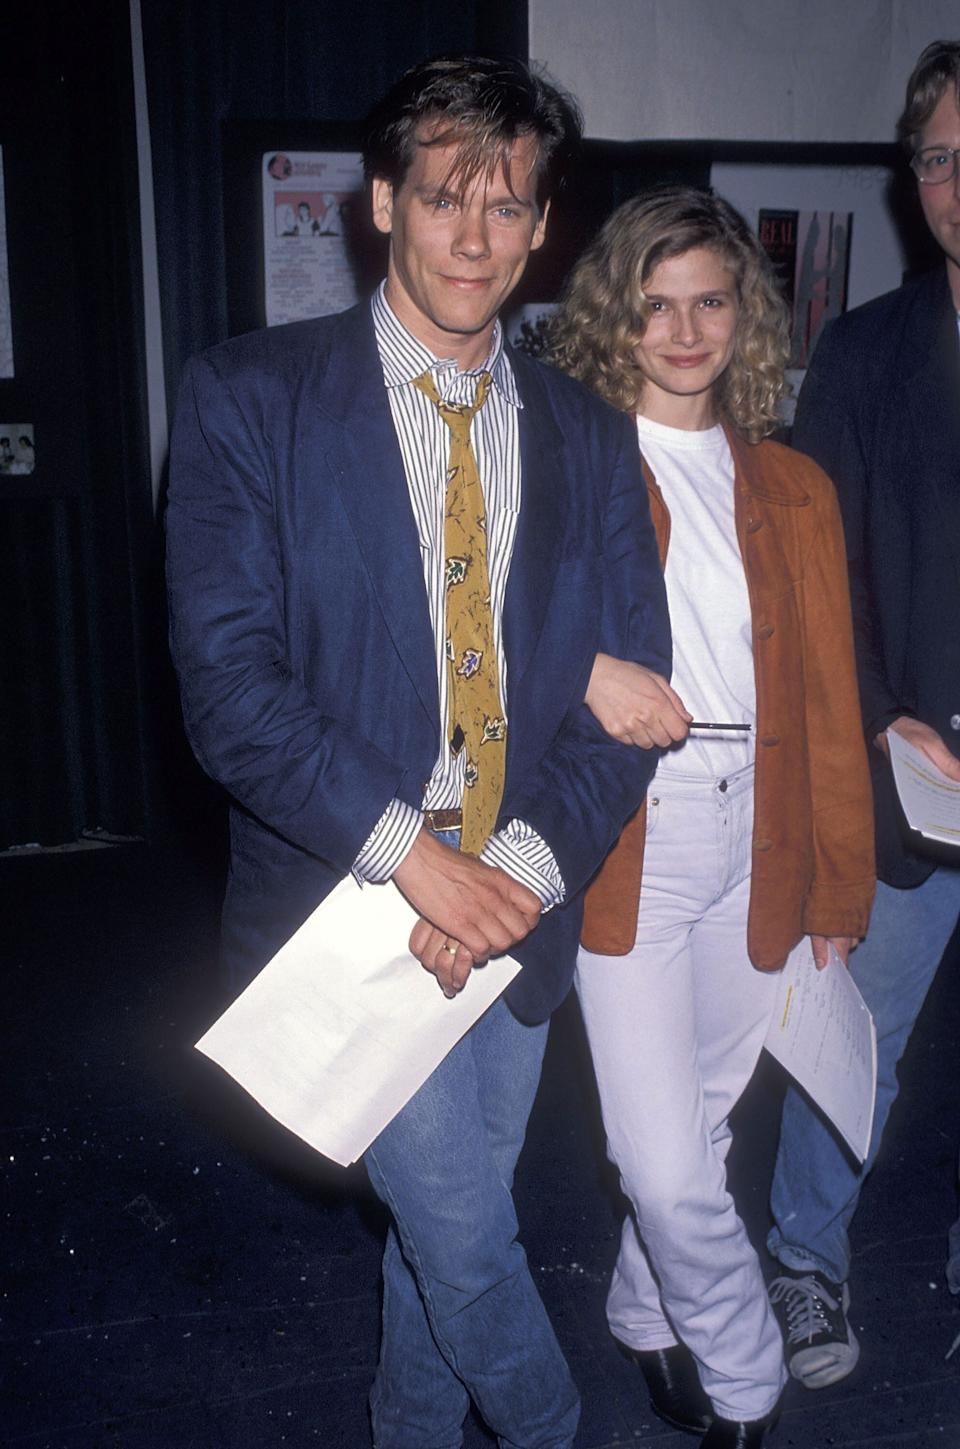 The couple at the Red Earth Ensemble's Fifth Anniversary Celebration at the Westbeth Theatre in New York City.